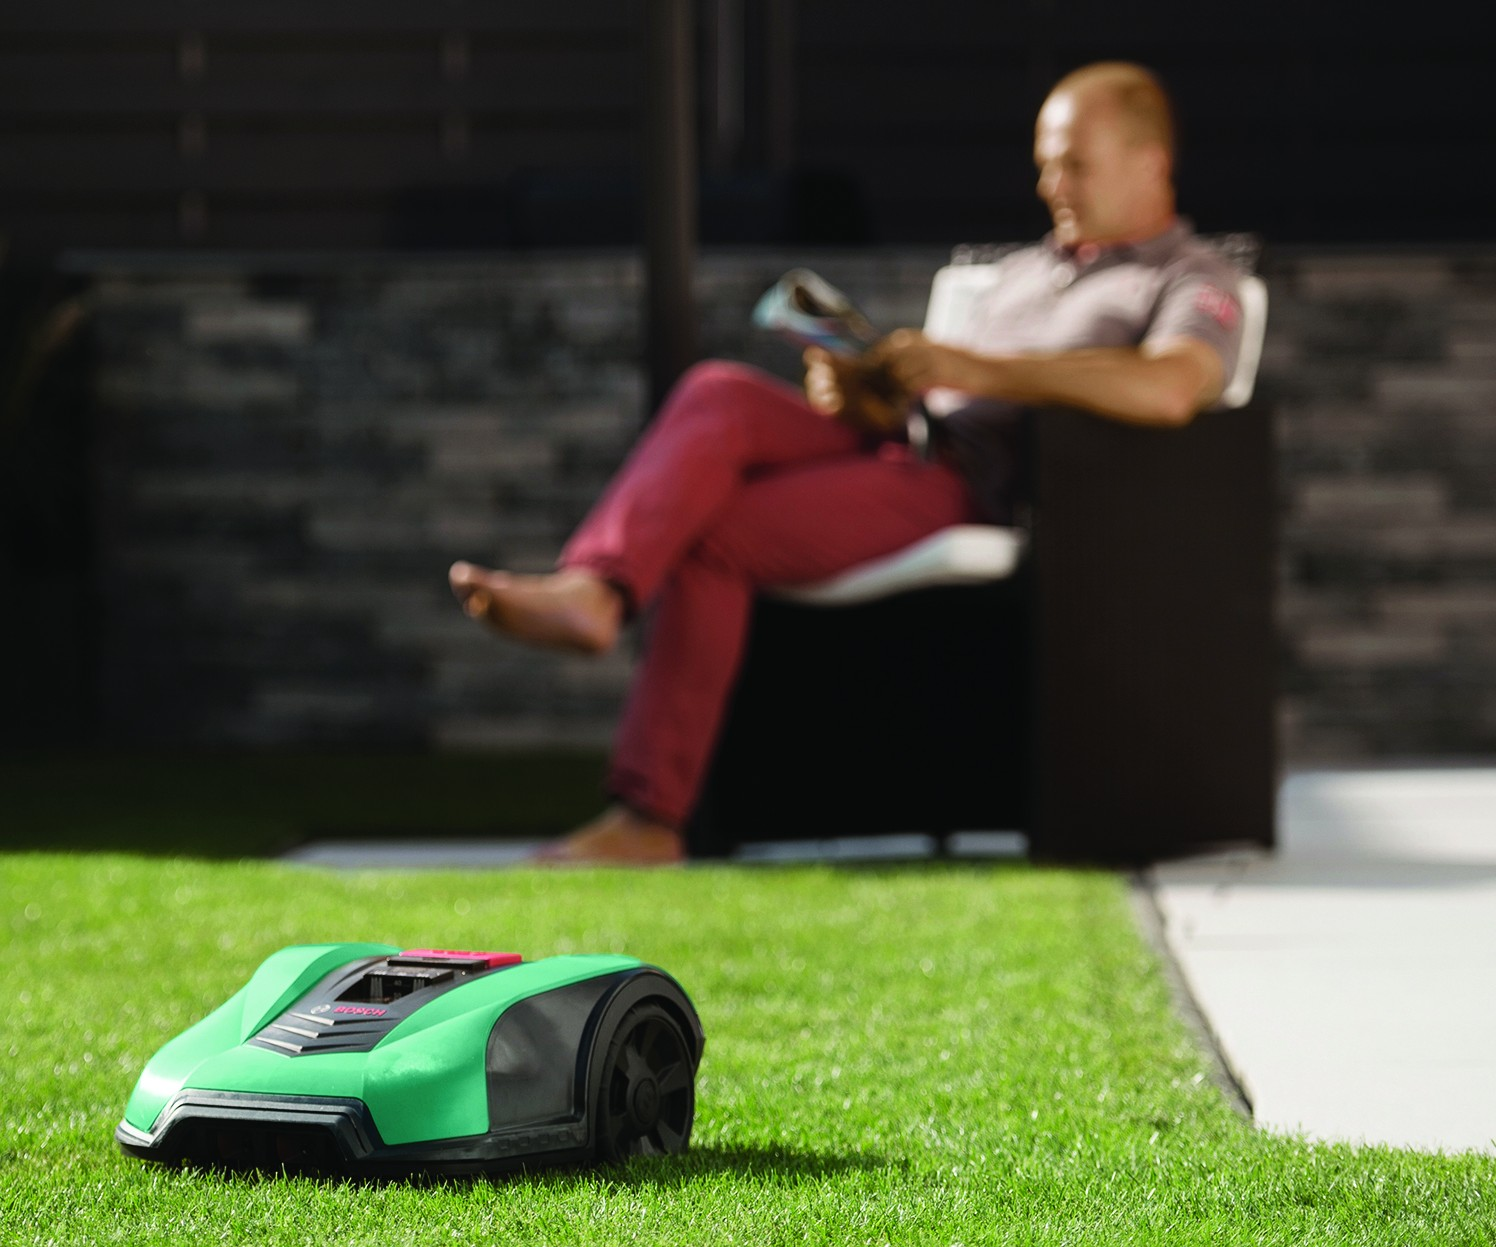 Yes, this is a lawn mower. But not just any grass clipper. The Indego 400 Connect is able to determine the best path for cutting the lawn and then executing, but it is also smartphone-enabled. Tech like this can help with the development of the tech that will drive you to the golf course (because you don't need to be cutting your lawn because the robotic lawn mower is doing it for you).